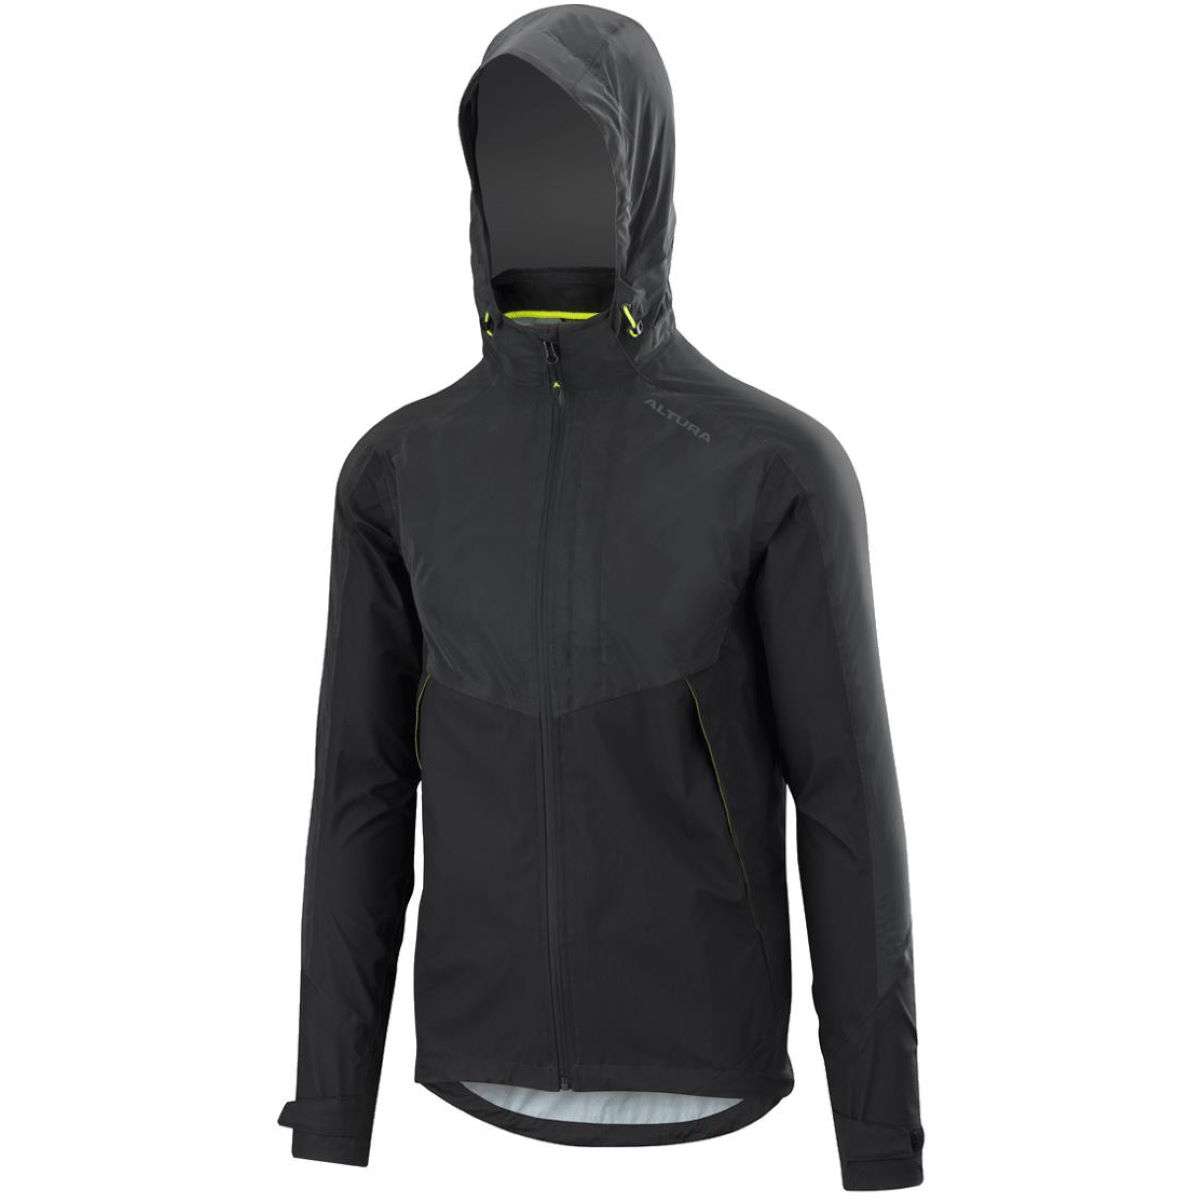 Veste Altura Nightvision Thunderstorm - S Charcoal/Charcoal Re